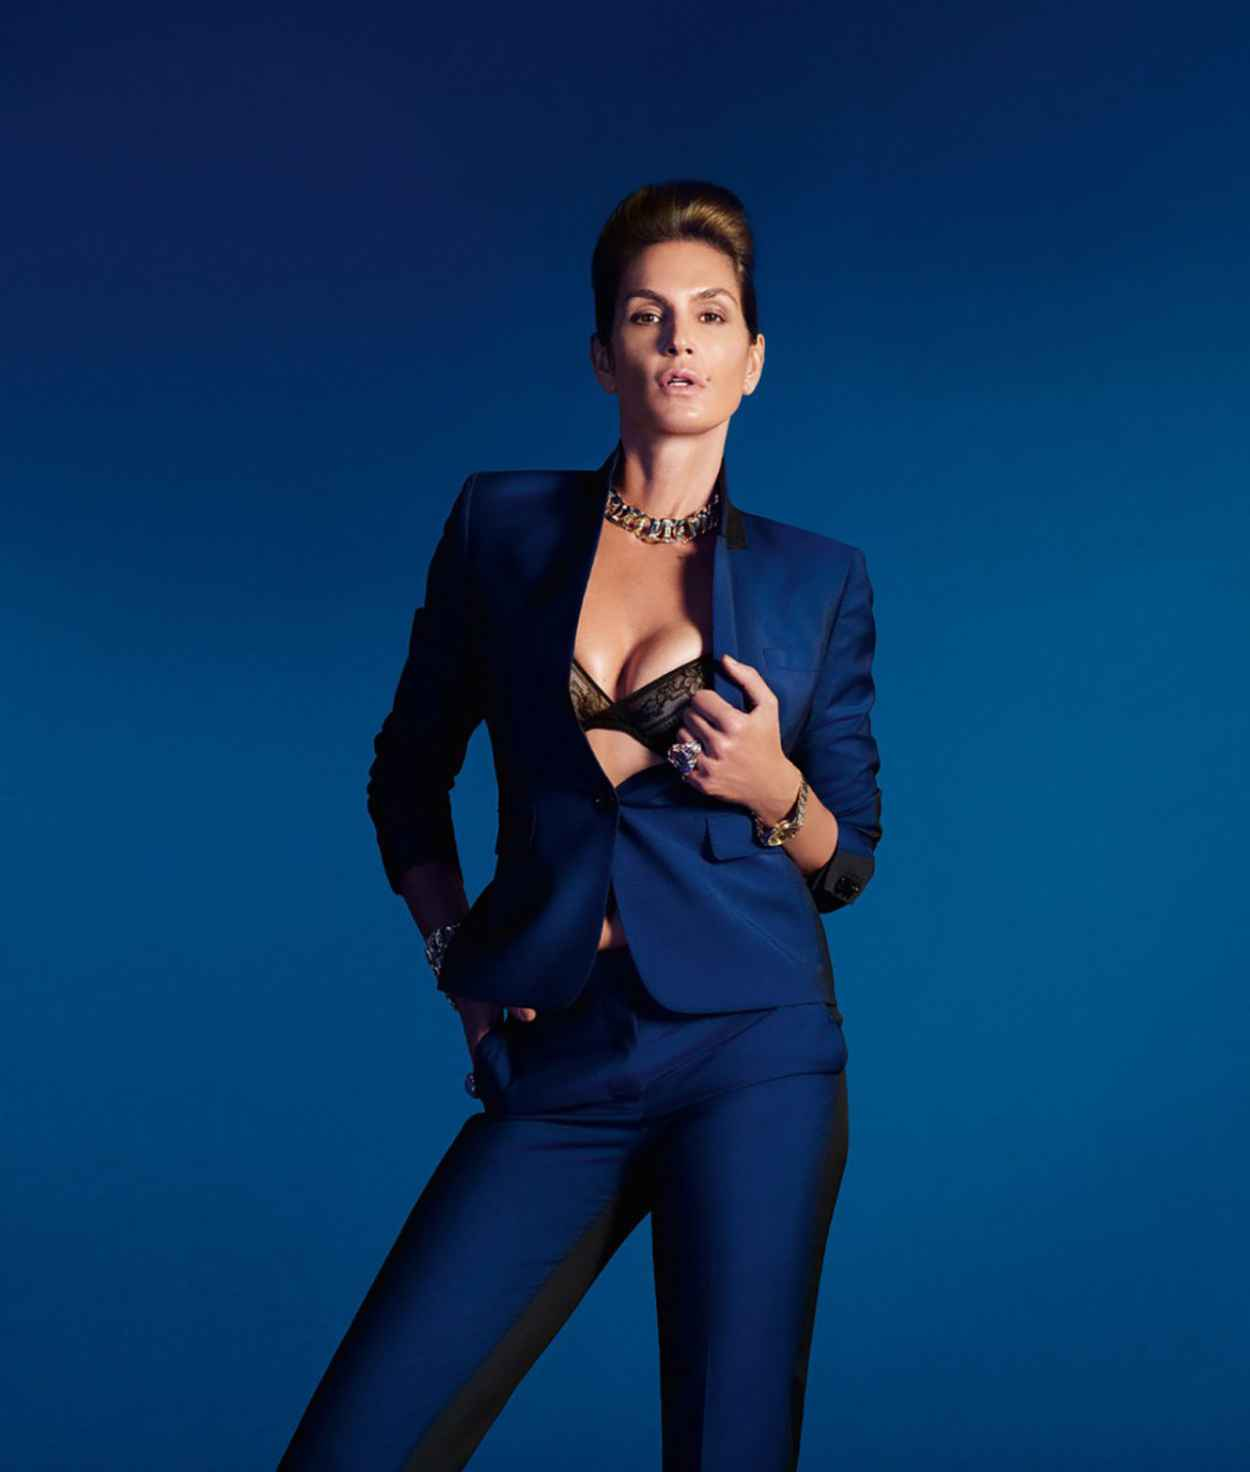 Cindy Crawford - Photoshoot for Citizen K International - Fall 2015-1